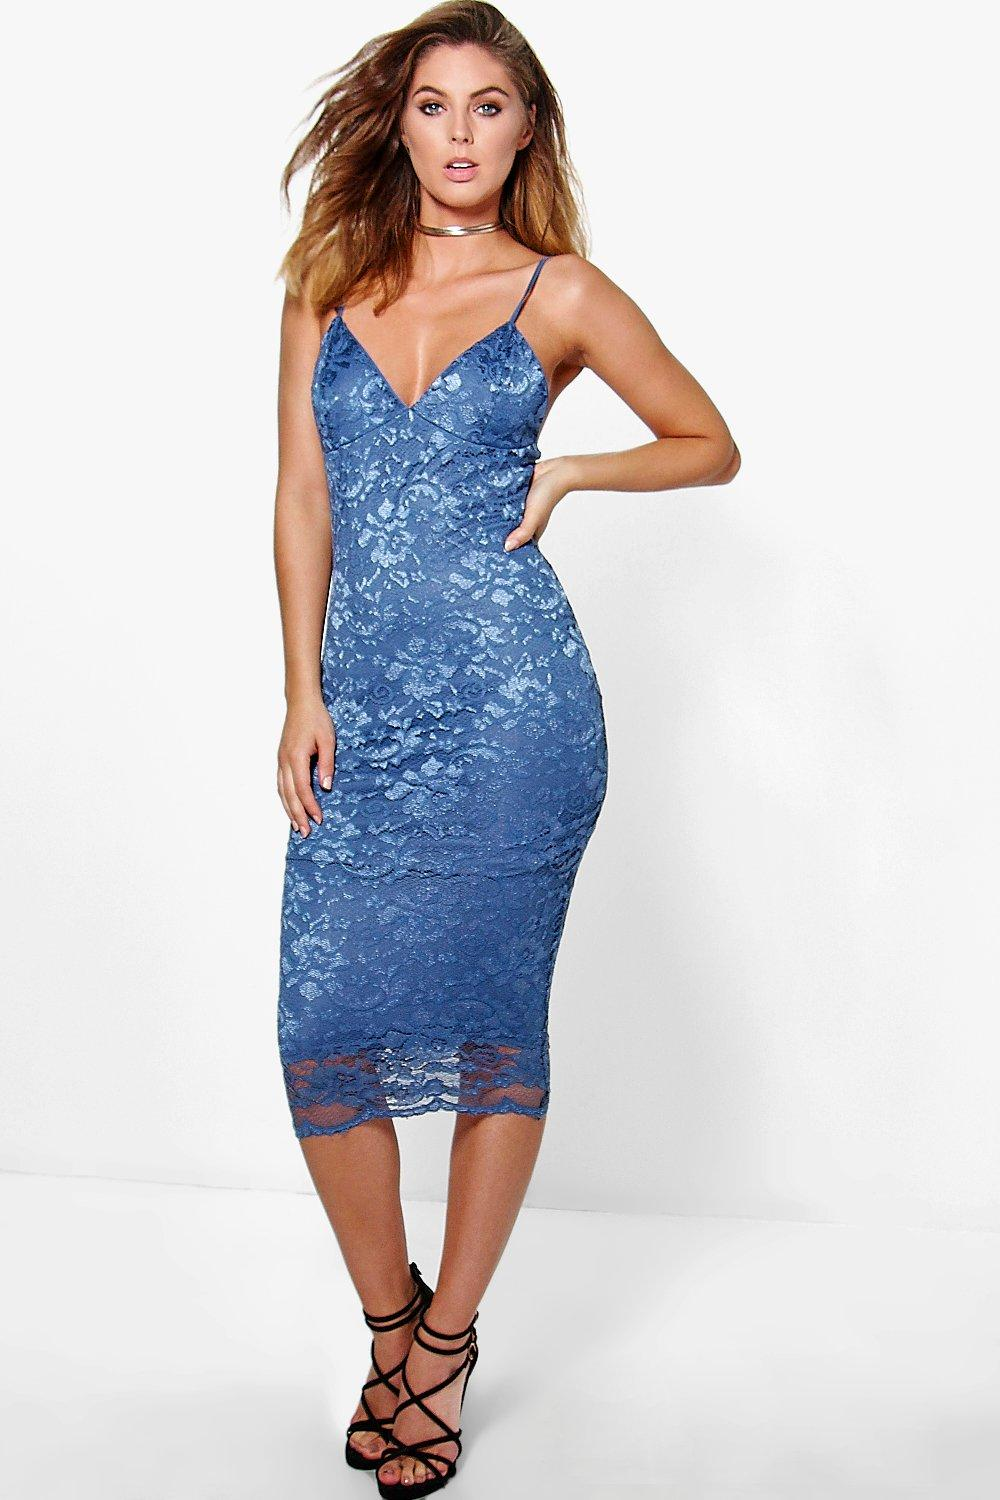 Kate Scallop Lace Midi Bodycon Dress